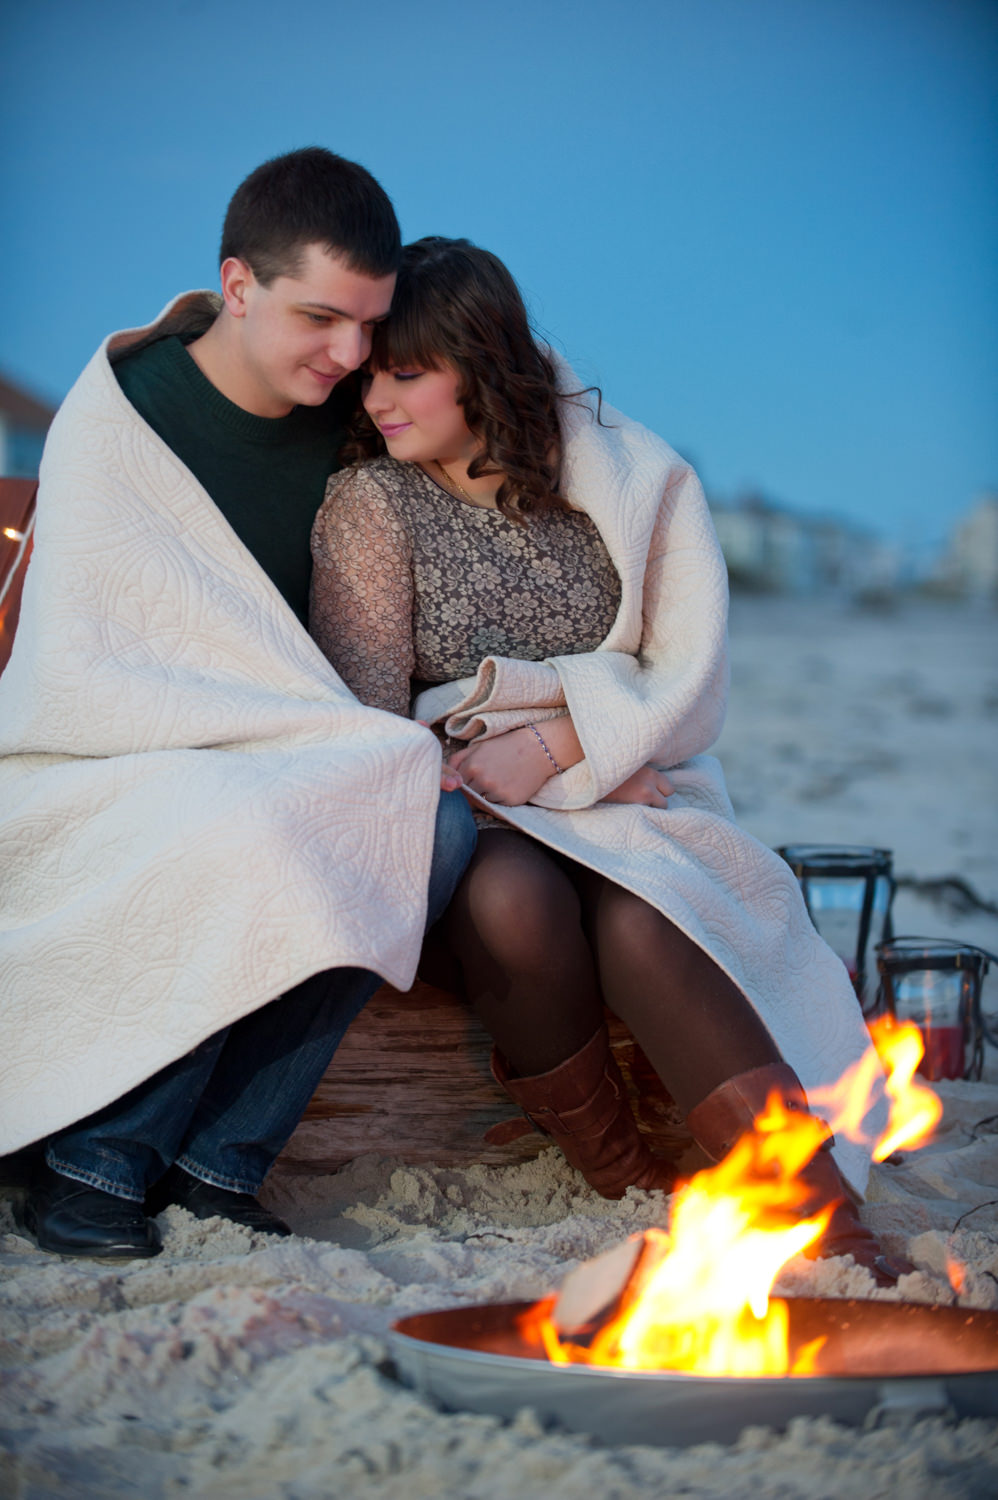 Maine and Destination Wedding Photographer - Engagement Session-2.jpg